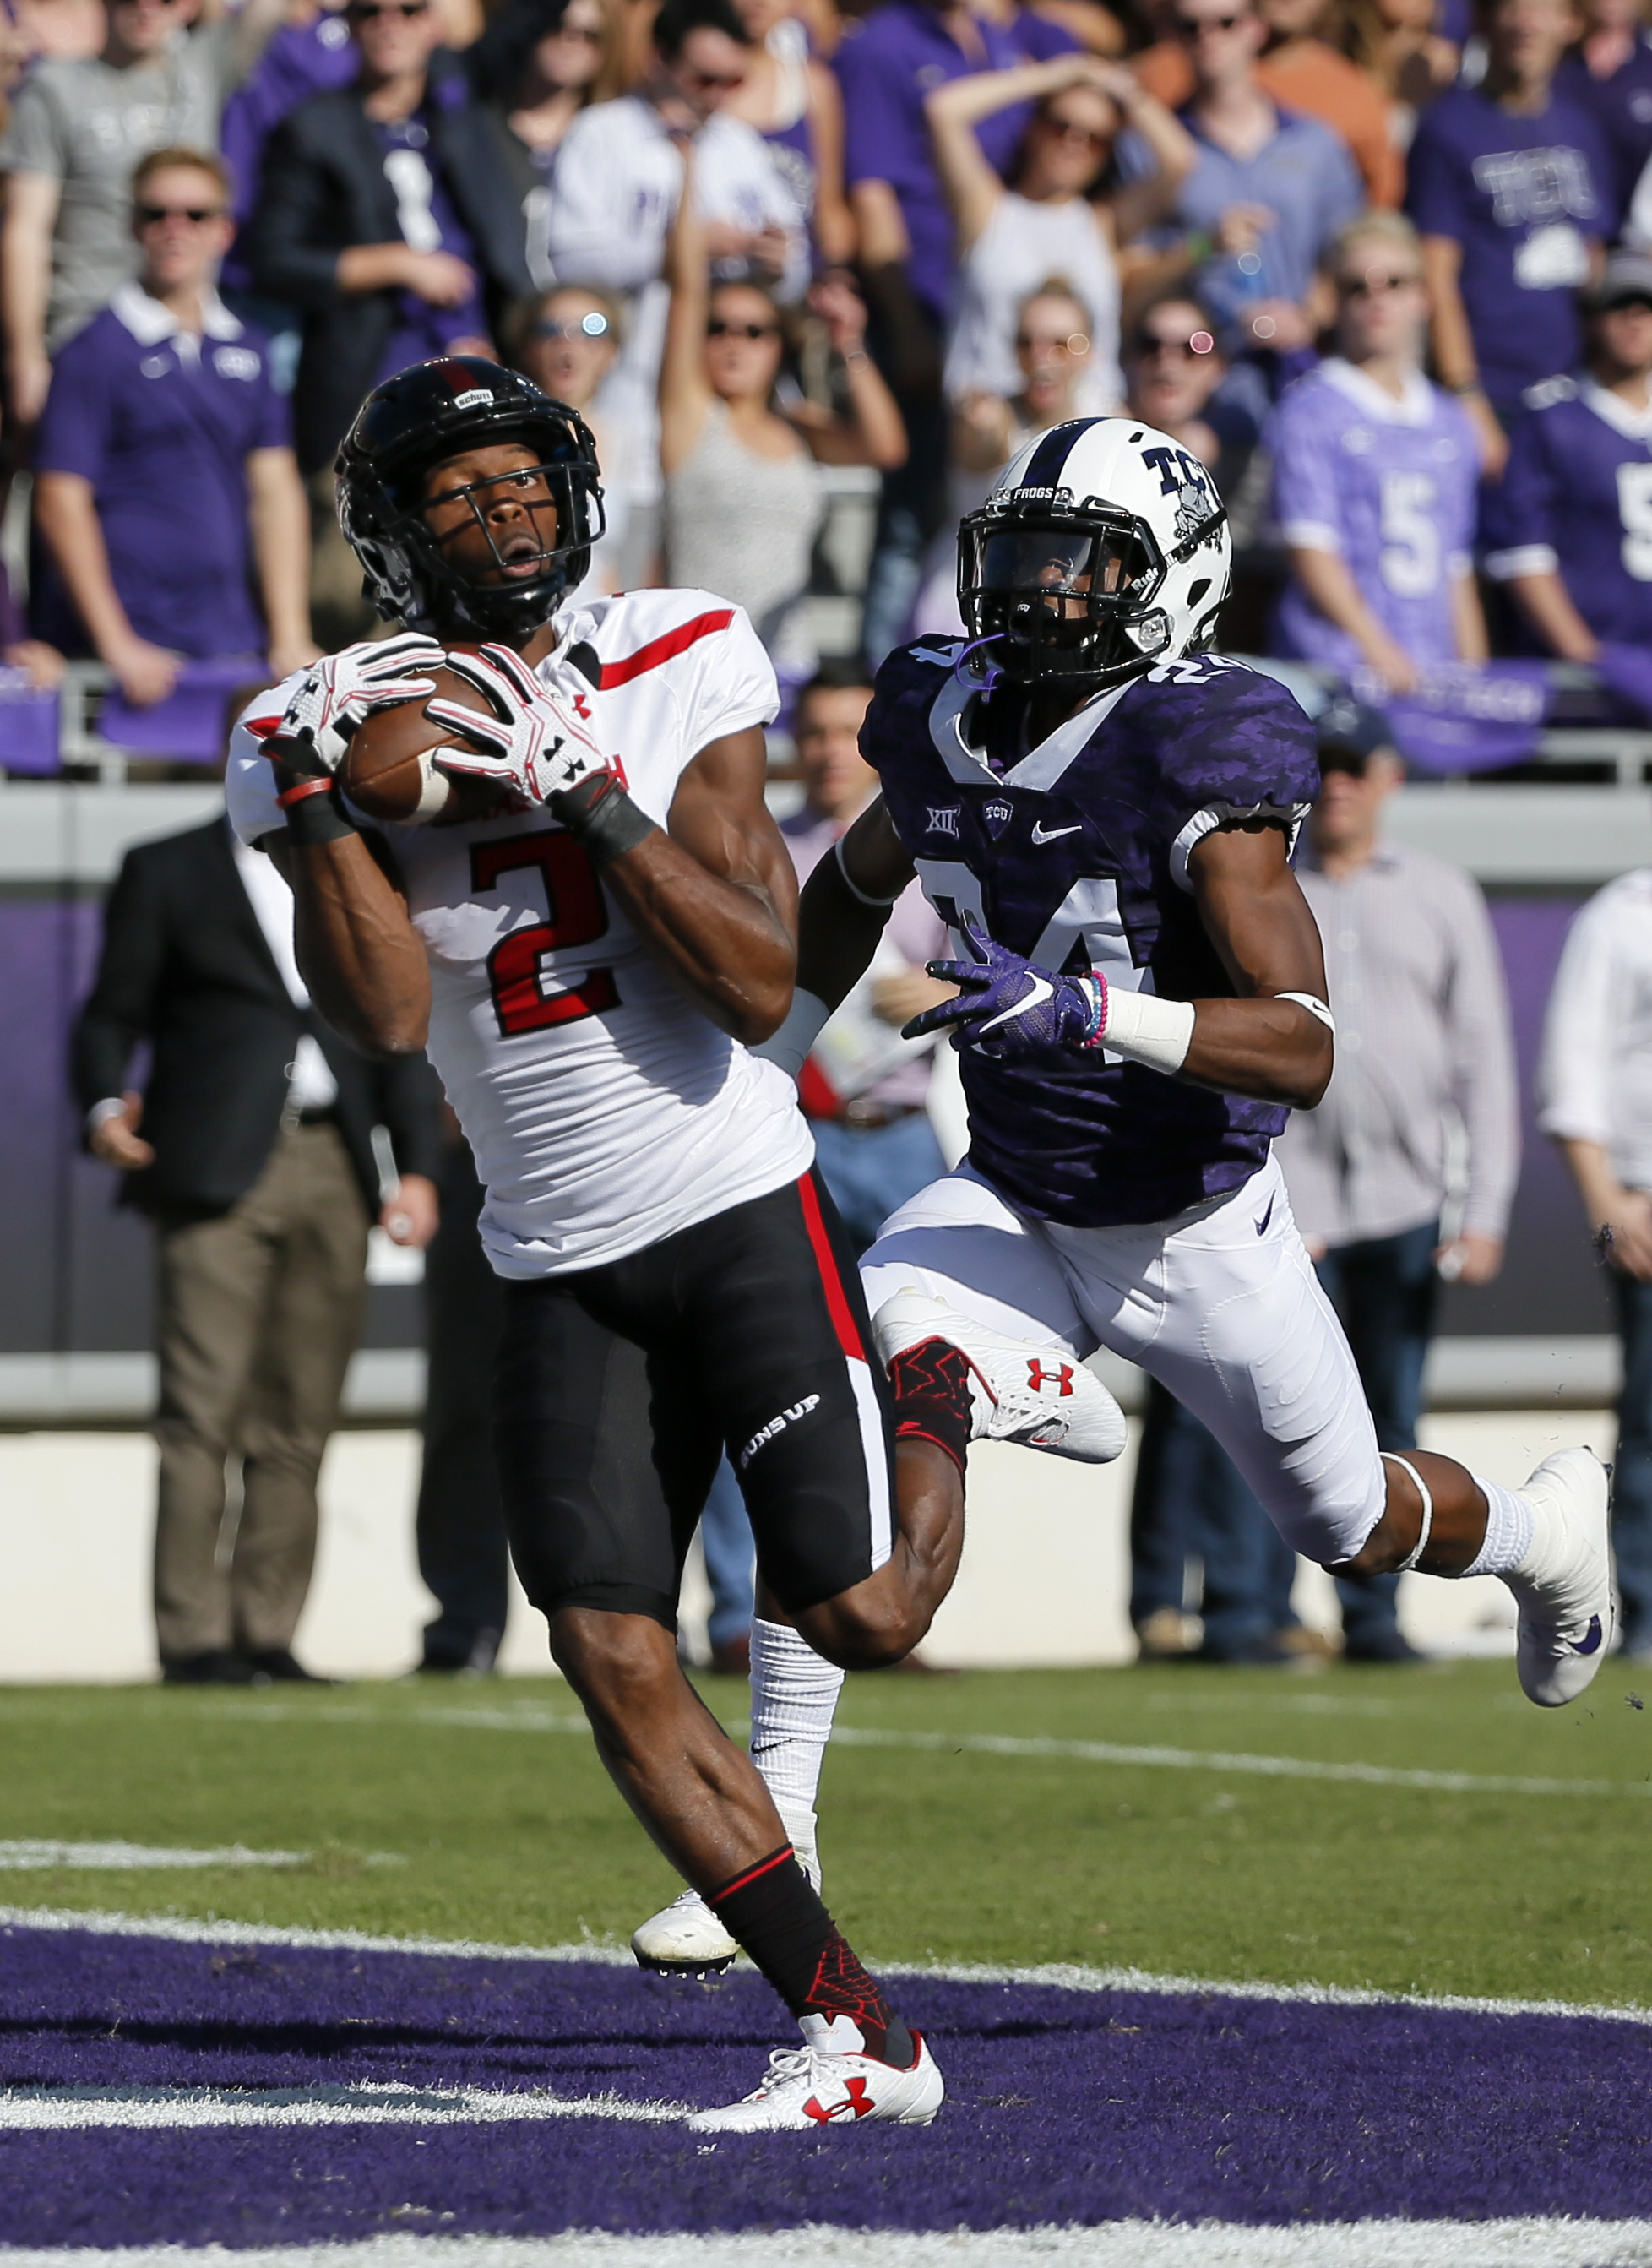 Texas Tech escapes TCU with a 27-24 double-OT victory | WTOP